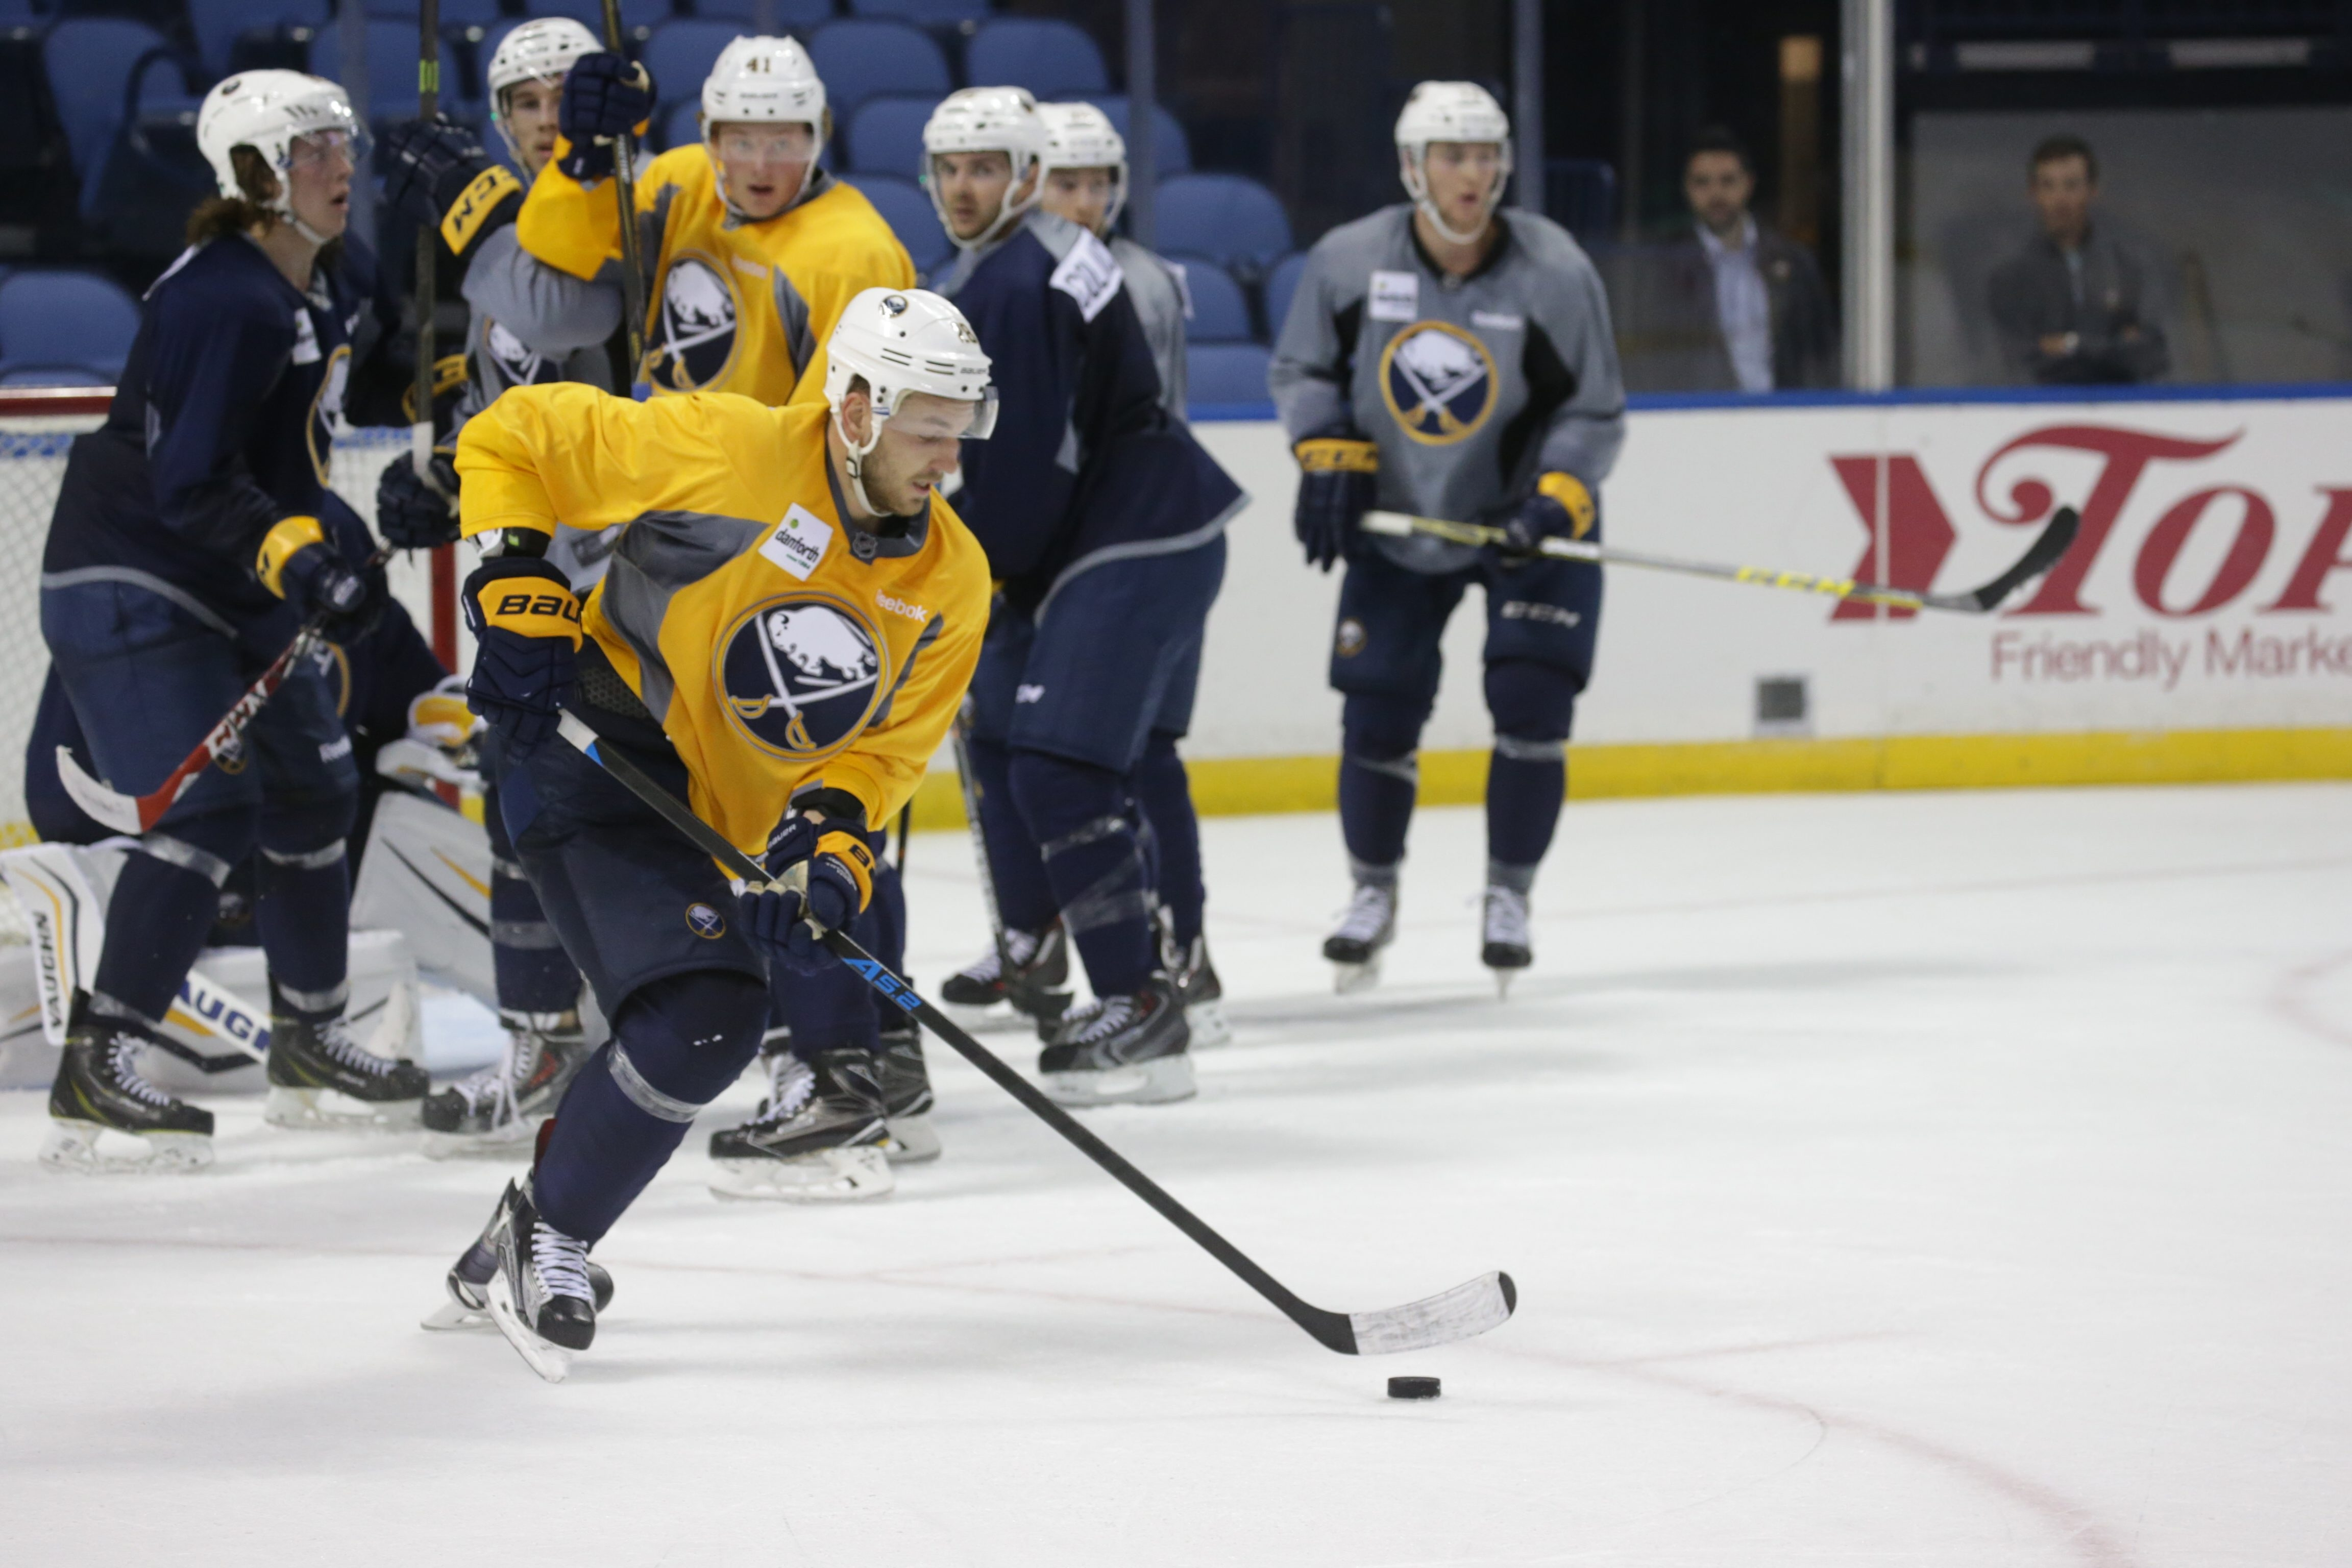 Zemgus Girgensons, at left wing, is playing on a line with Matt Moulson and Jack Eichel at the start of training camp.